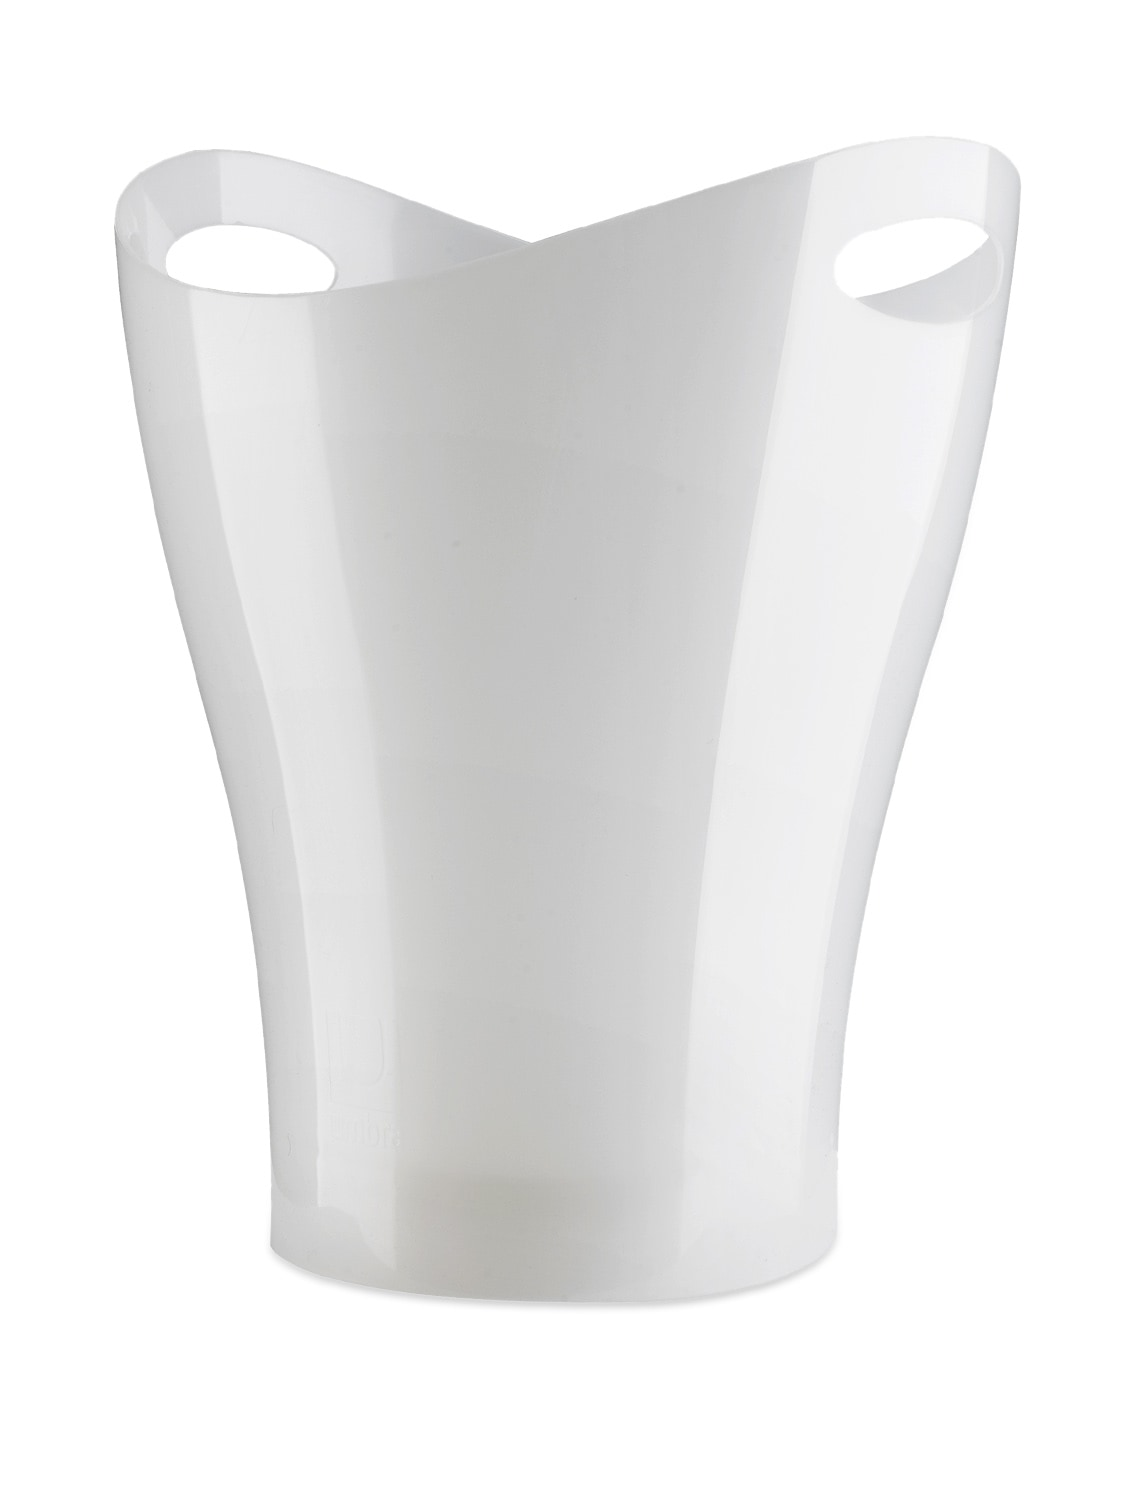 Buy White Classy Waste Bin by Umbra - Online shopping for Bath Sets ...